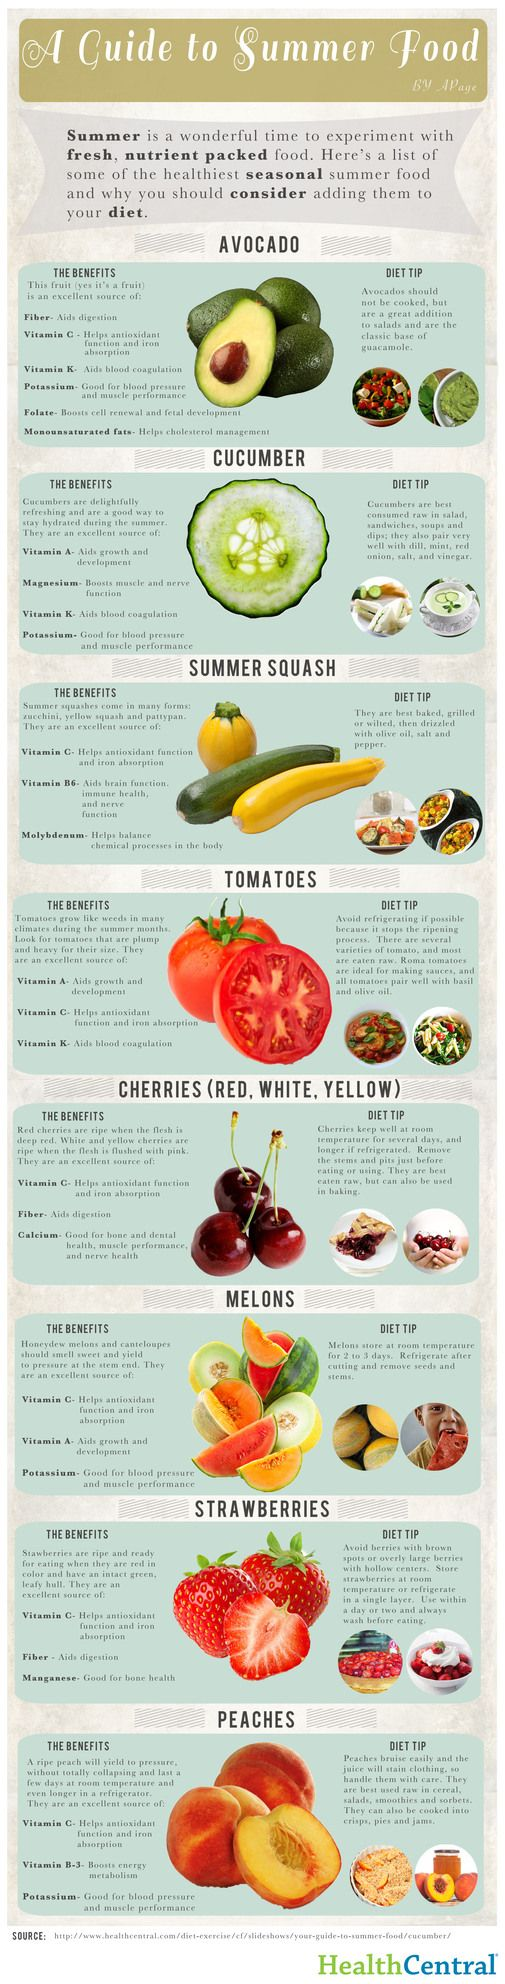 Foodista | Infographic: A Guide to Summer Foods | outlines some of summer's best fruits and vegetables, and their health benefits. Experiment with some of the season's finest harvests before it's time to get your coats and mittens on again.